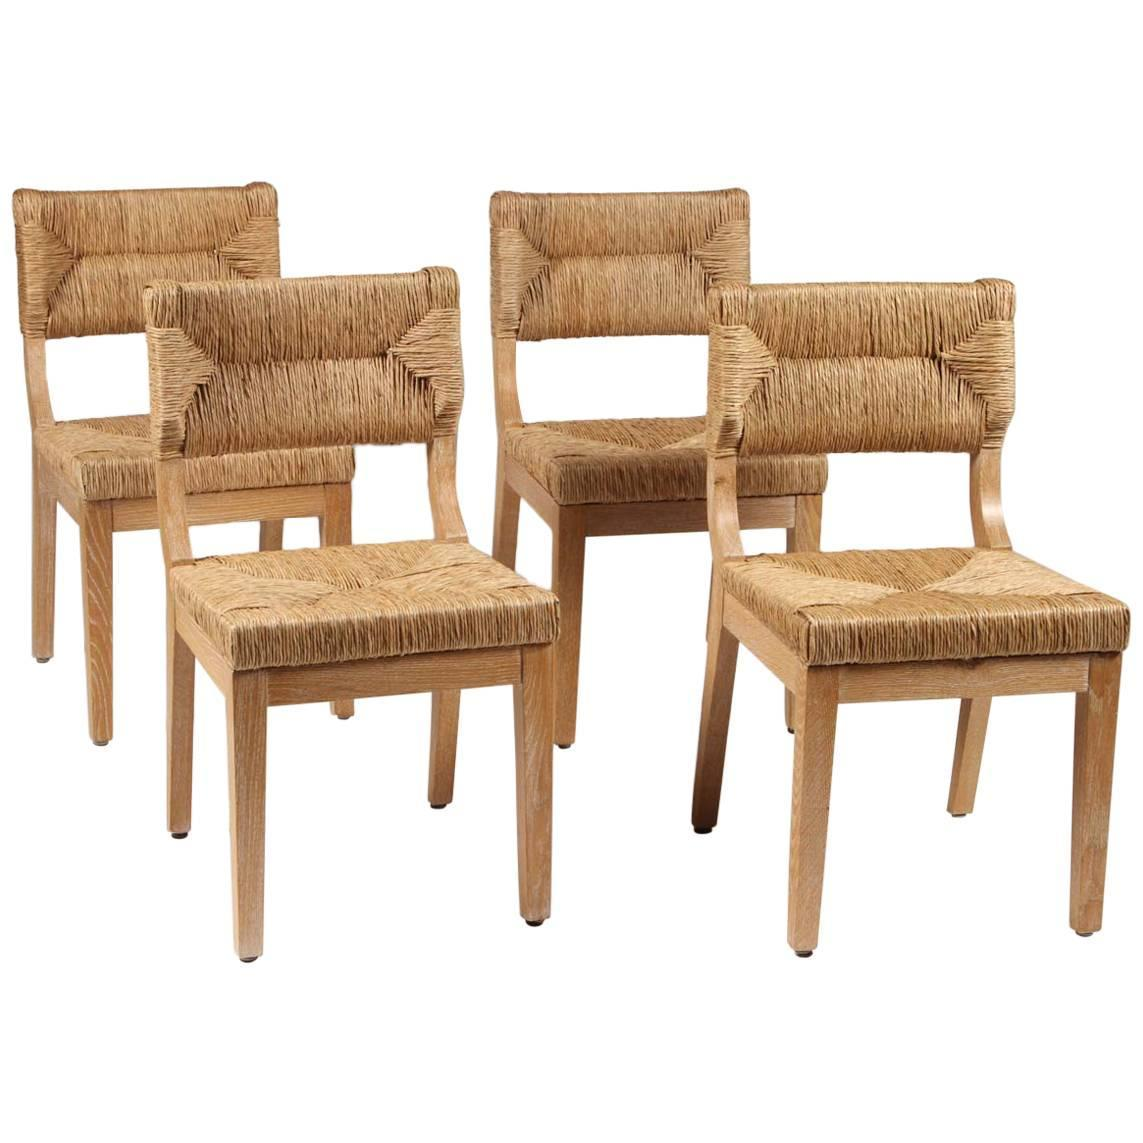 Italian Dining Chairs Set Of Four Italian Dining Chairs With Rush Backs And